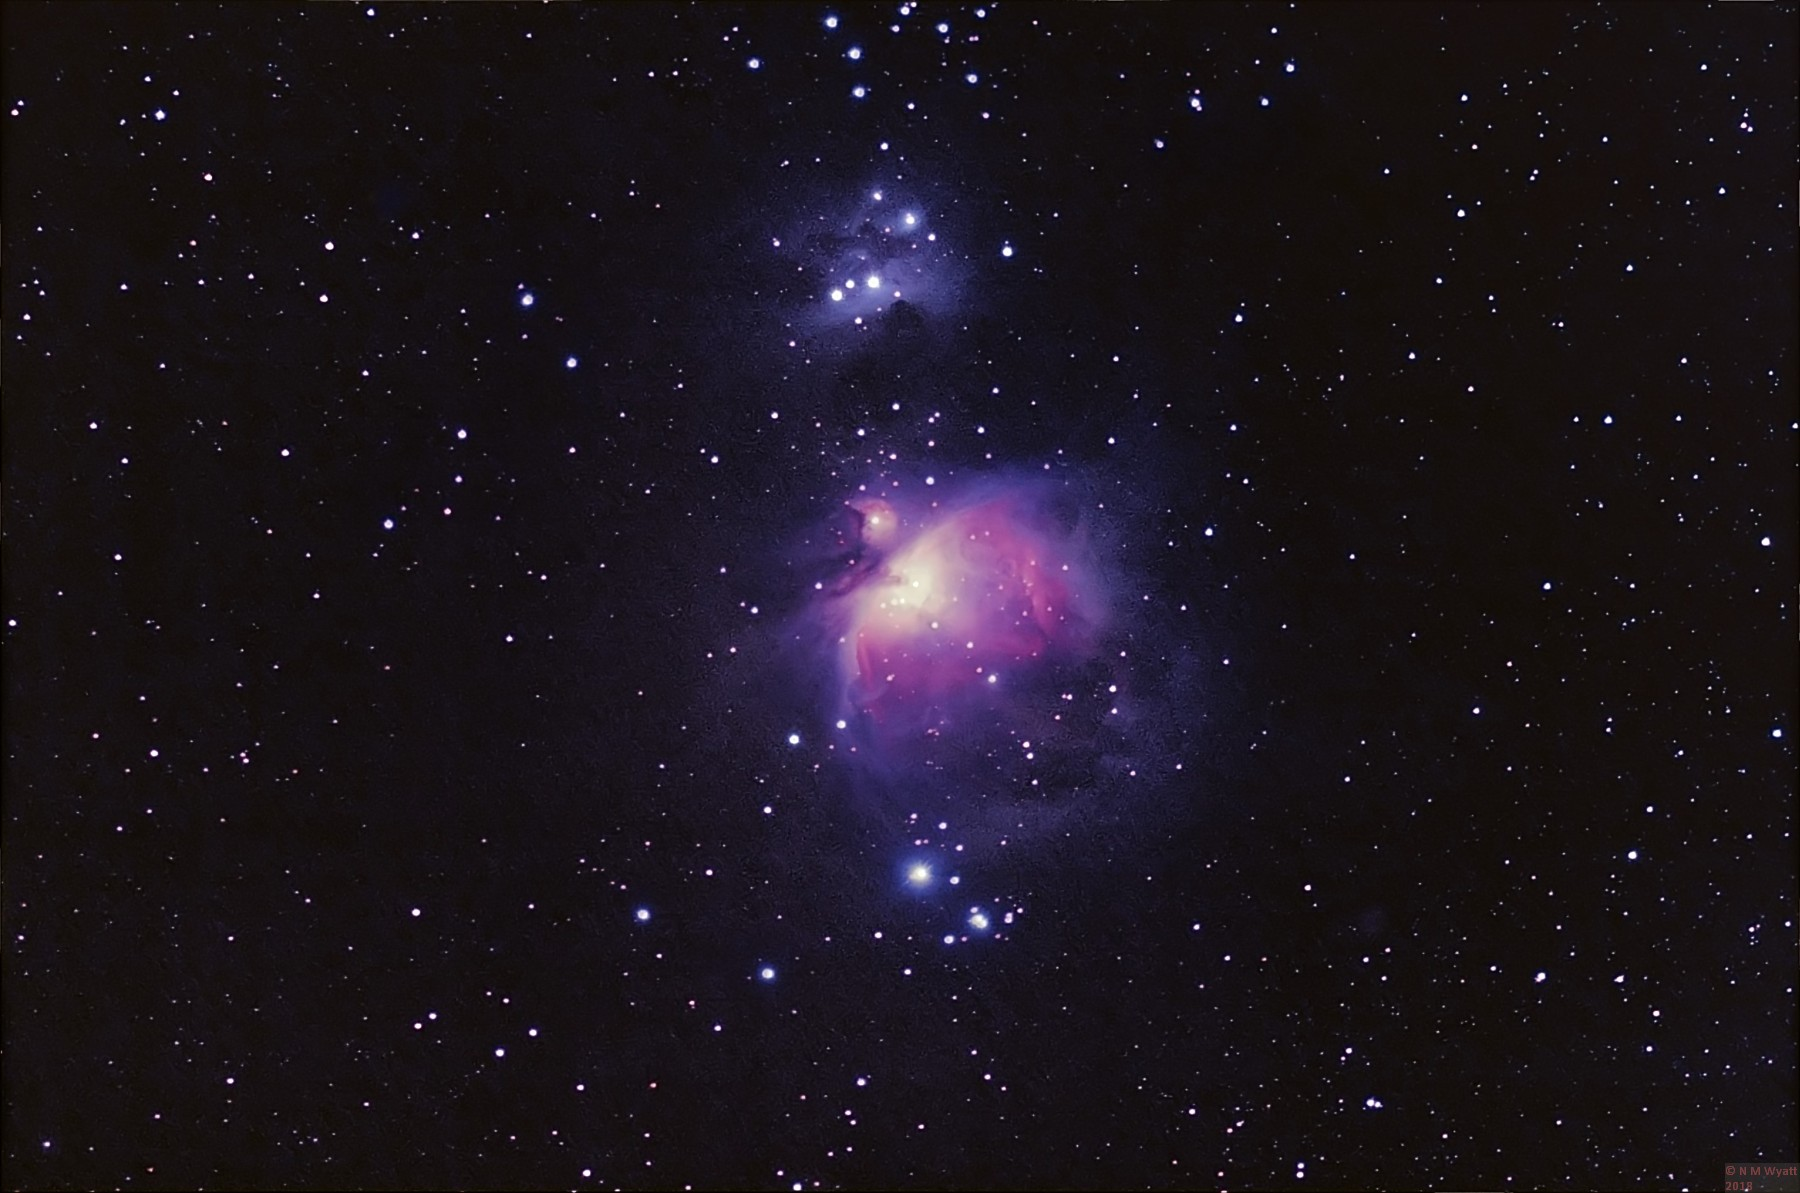 orion nebula reprocessed deconvoluted filtered